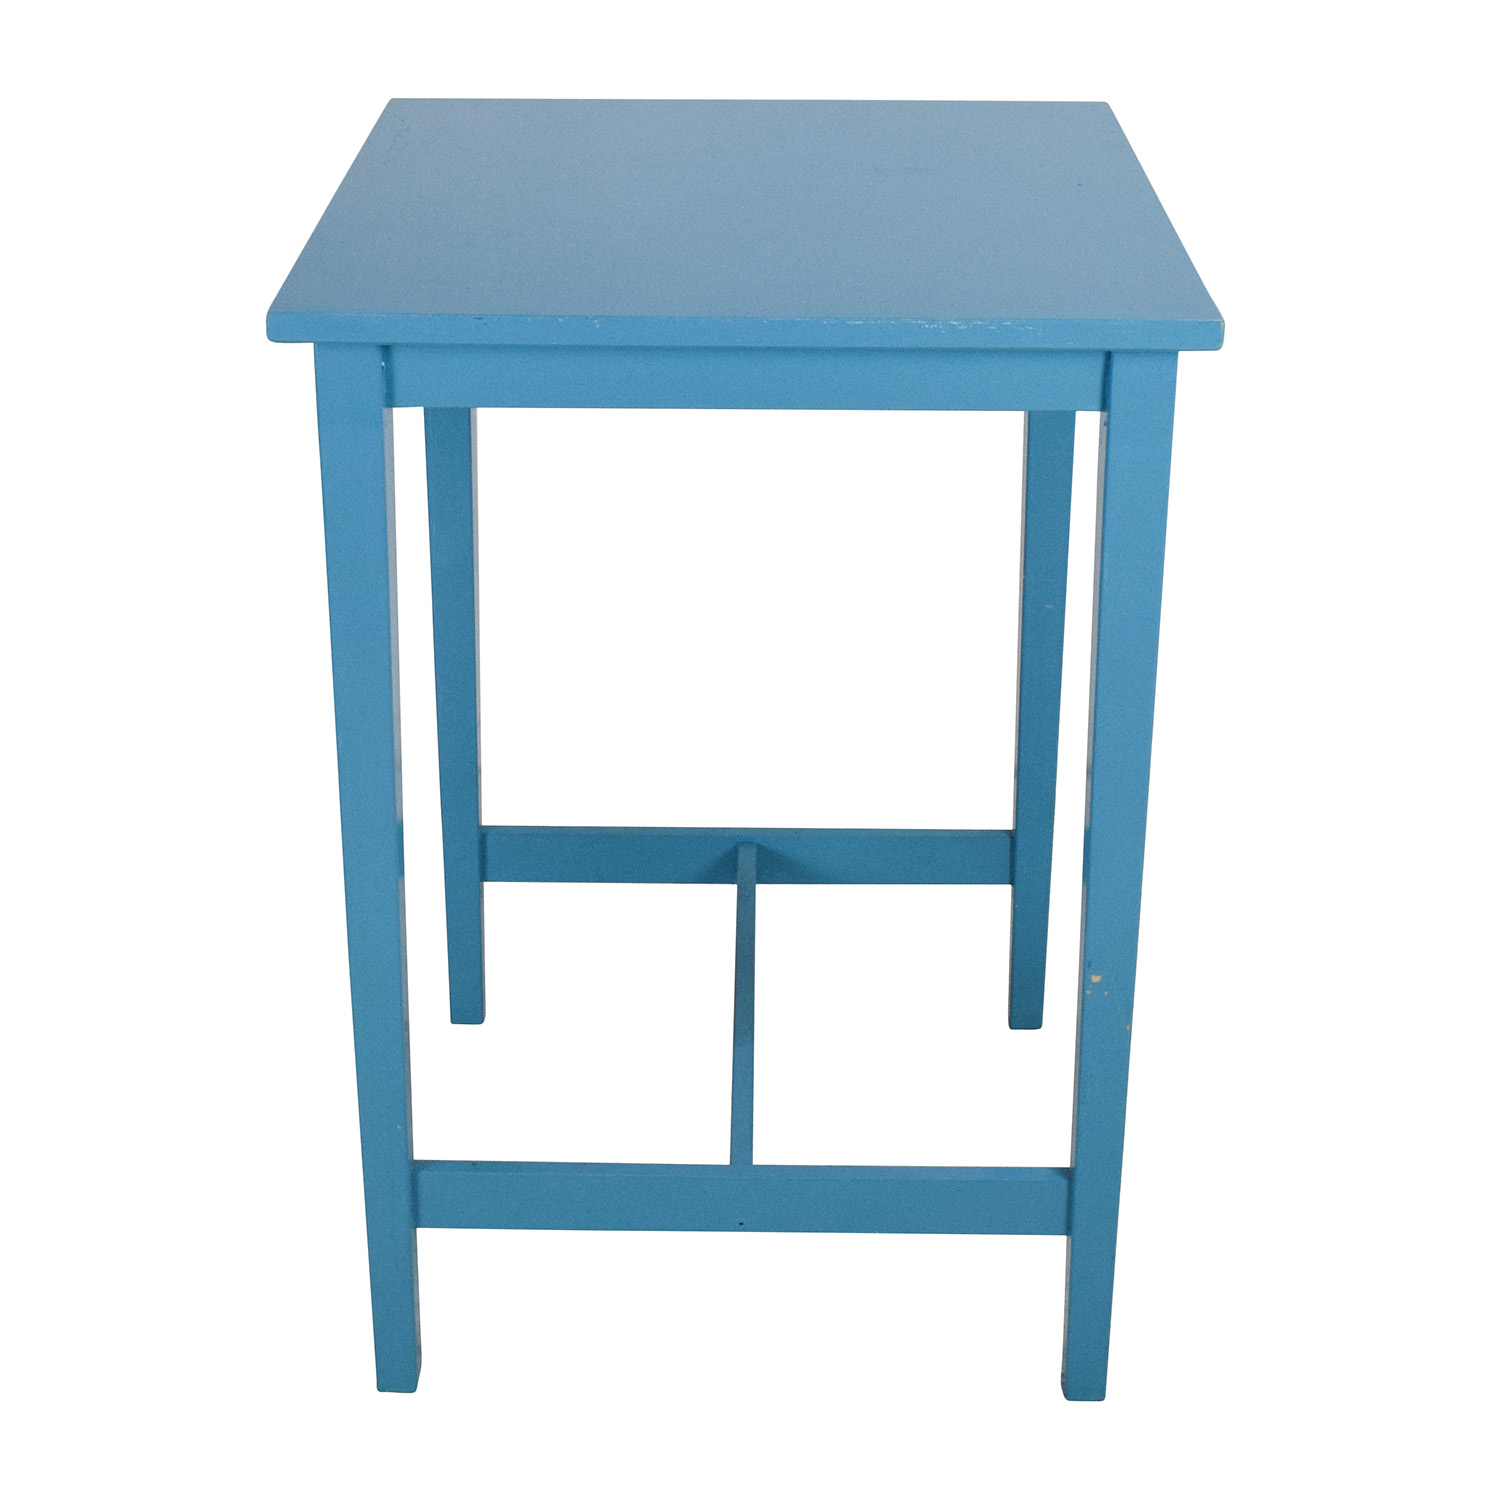 Blue High Table on sale